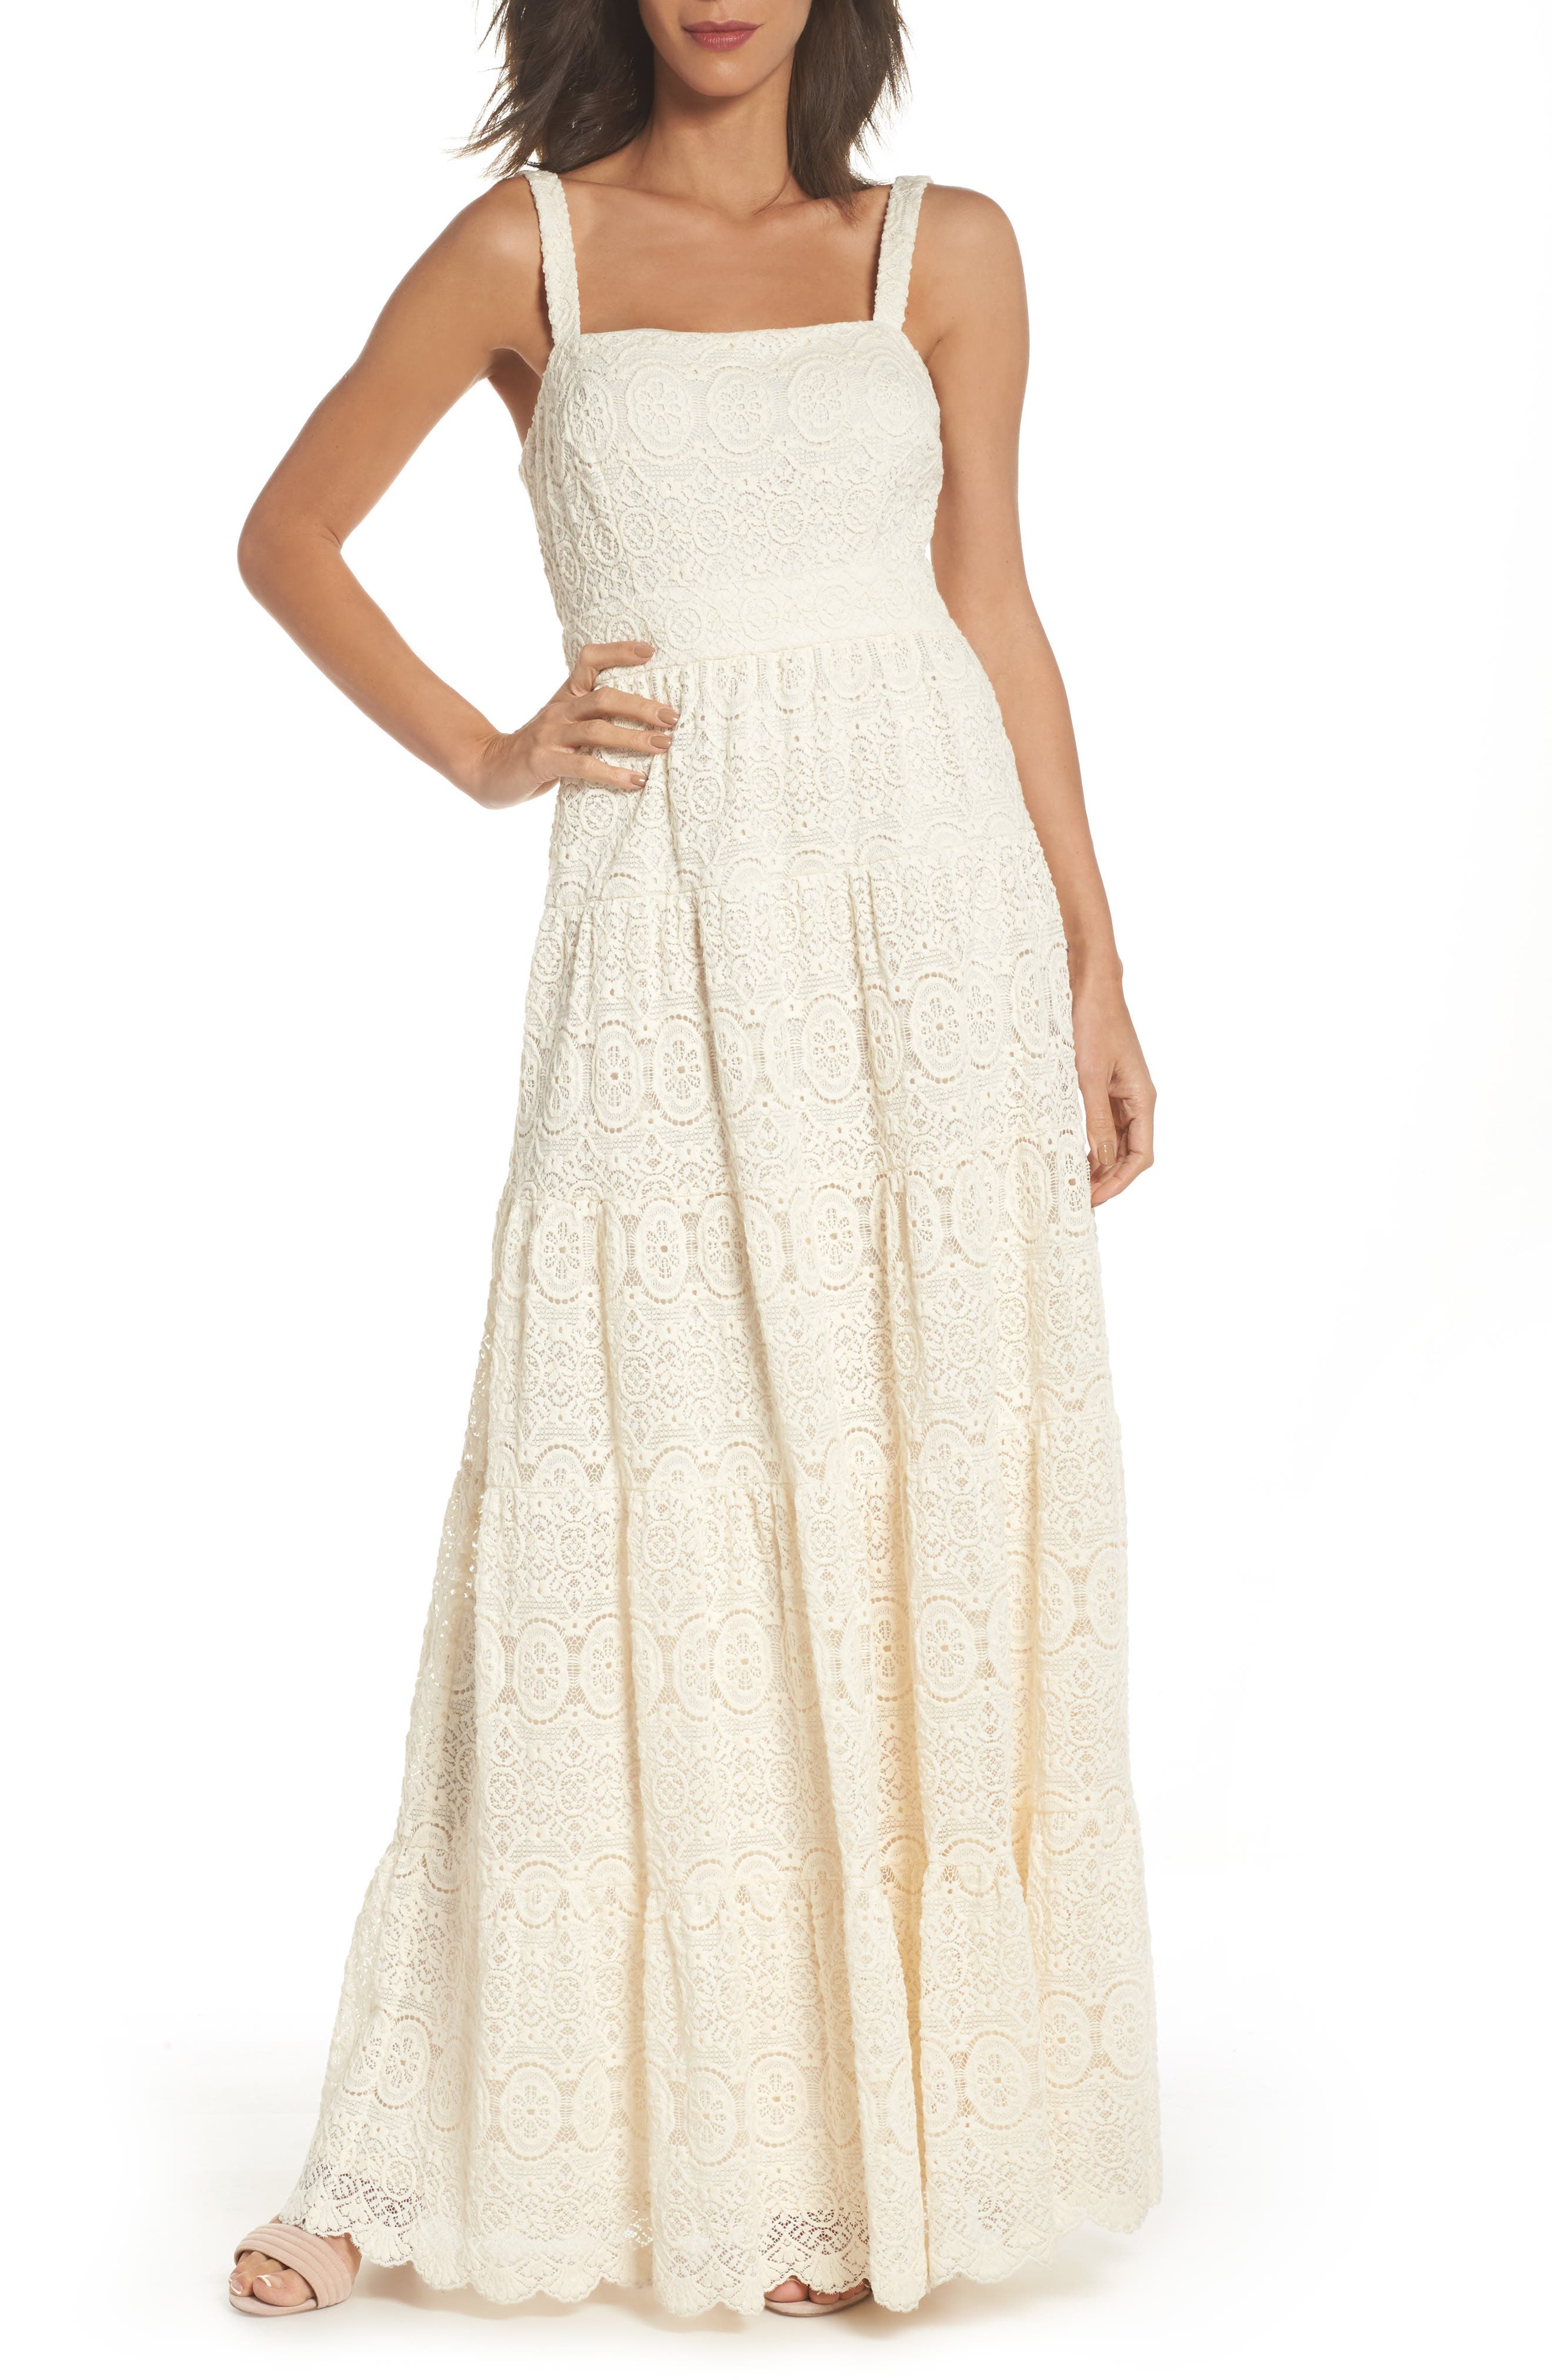 Tiered Lace Maxi Dress,                         Main,                         color, 900